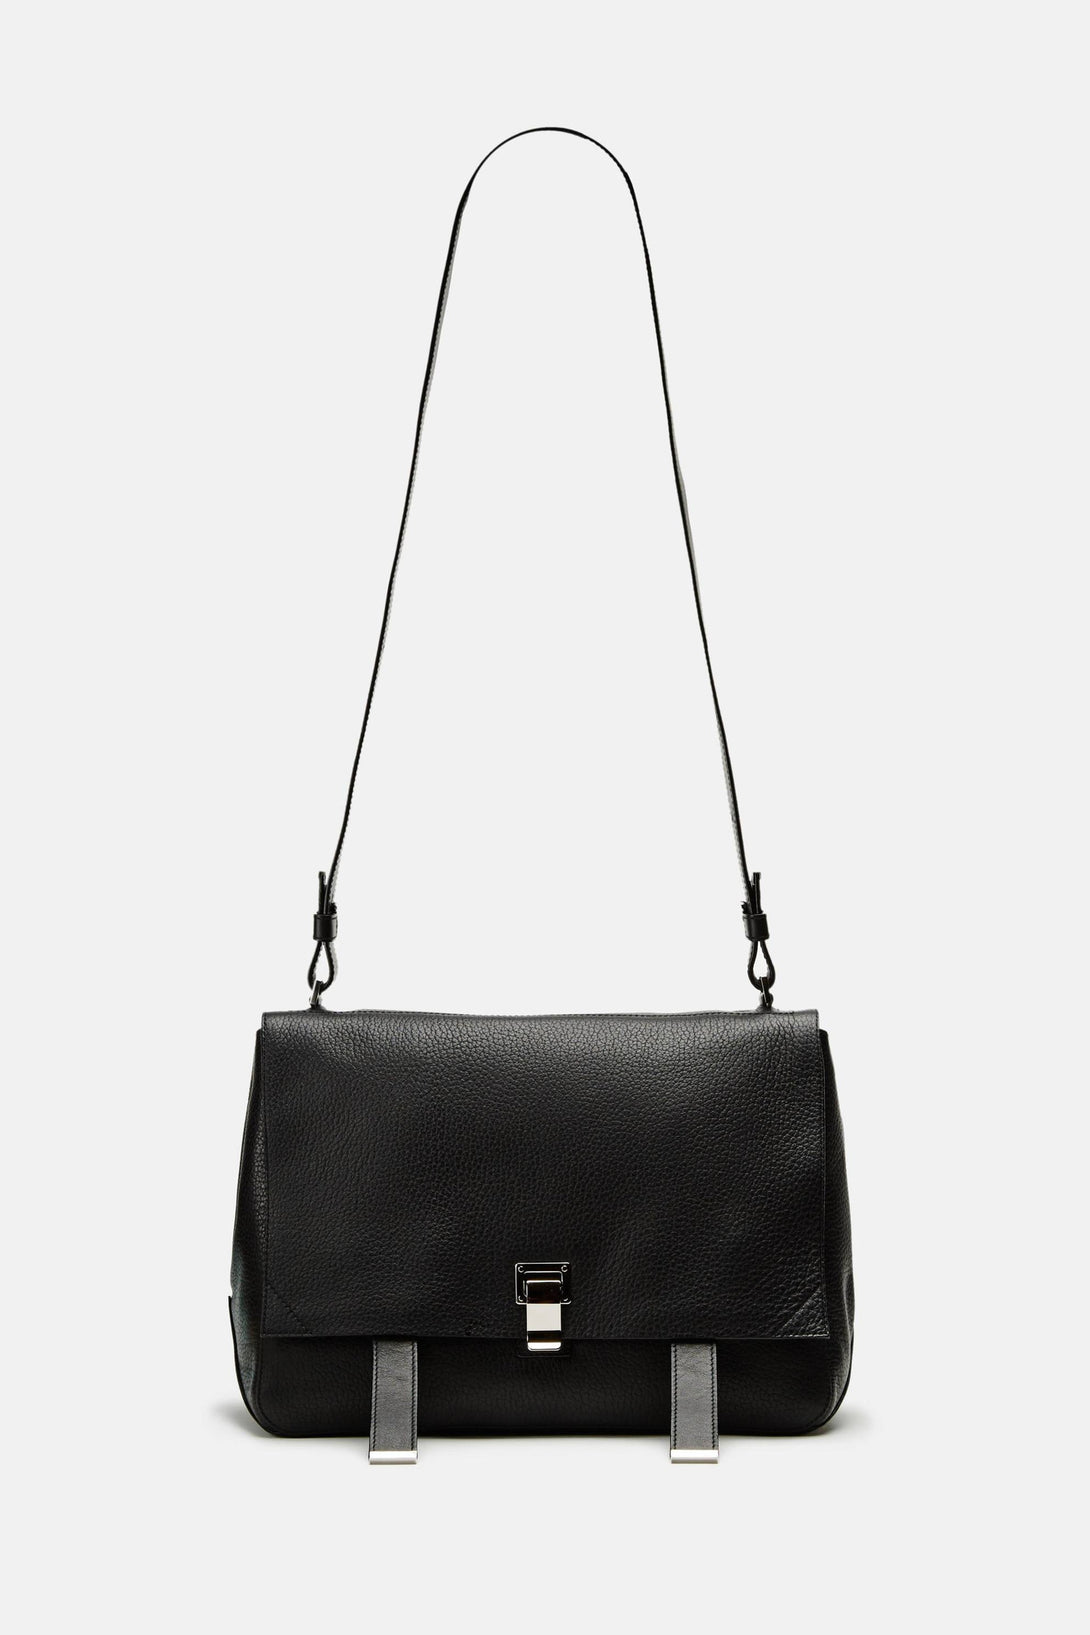 PS Large Shoulder Courier - Black